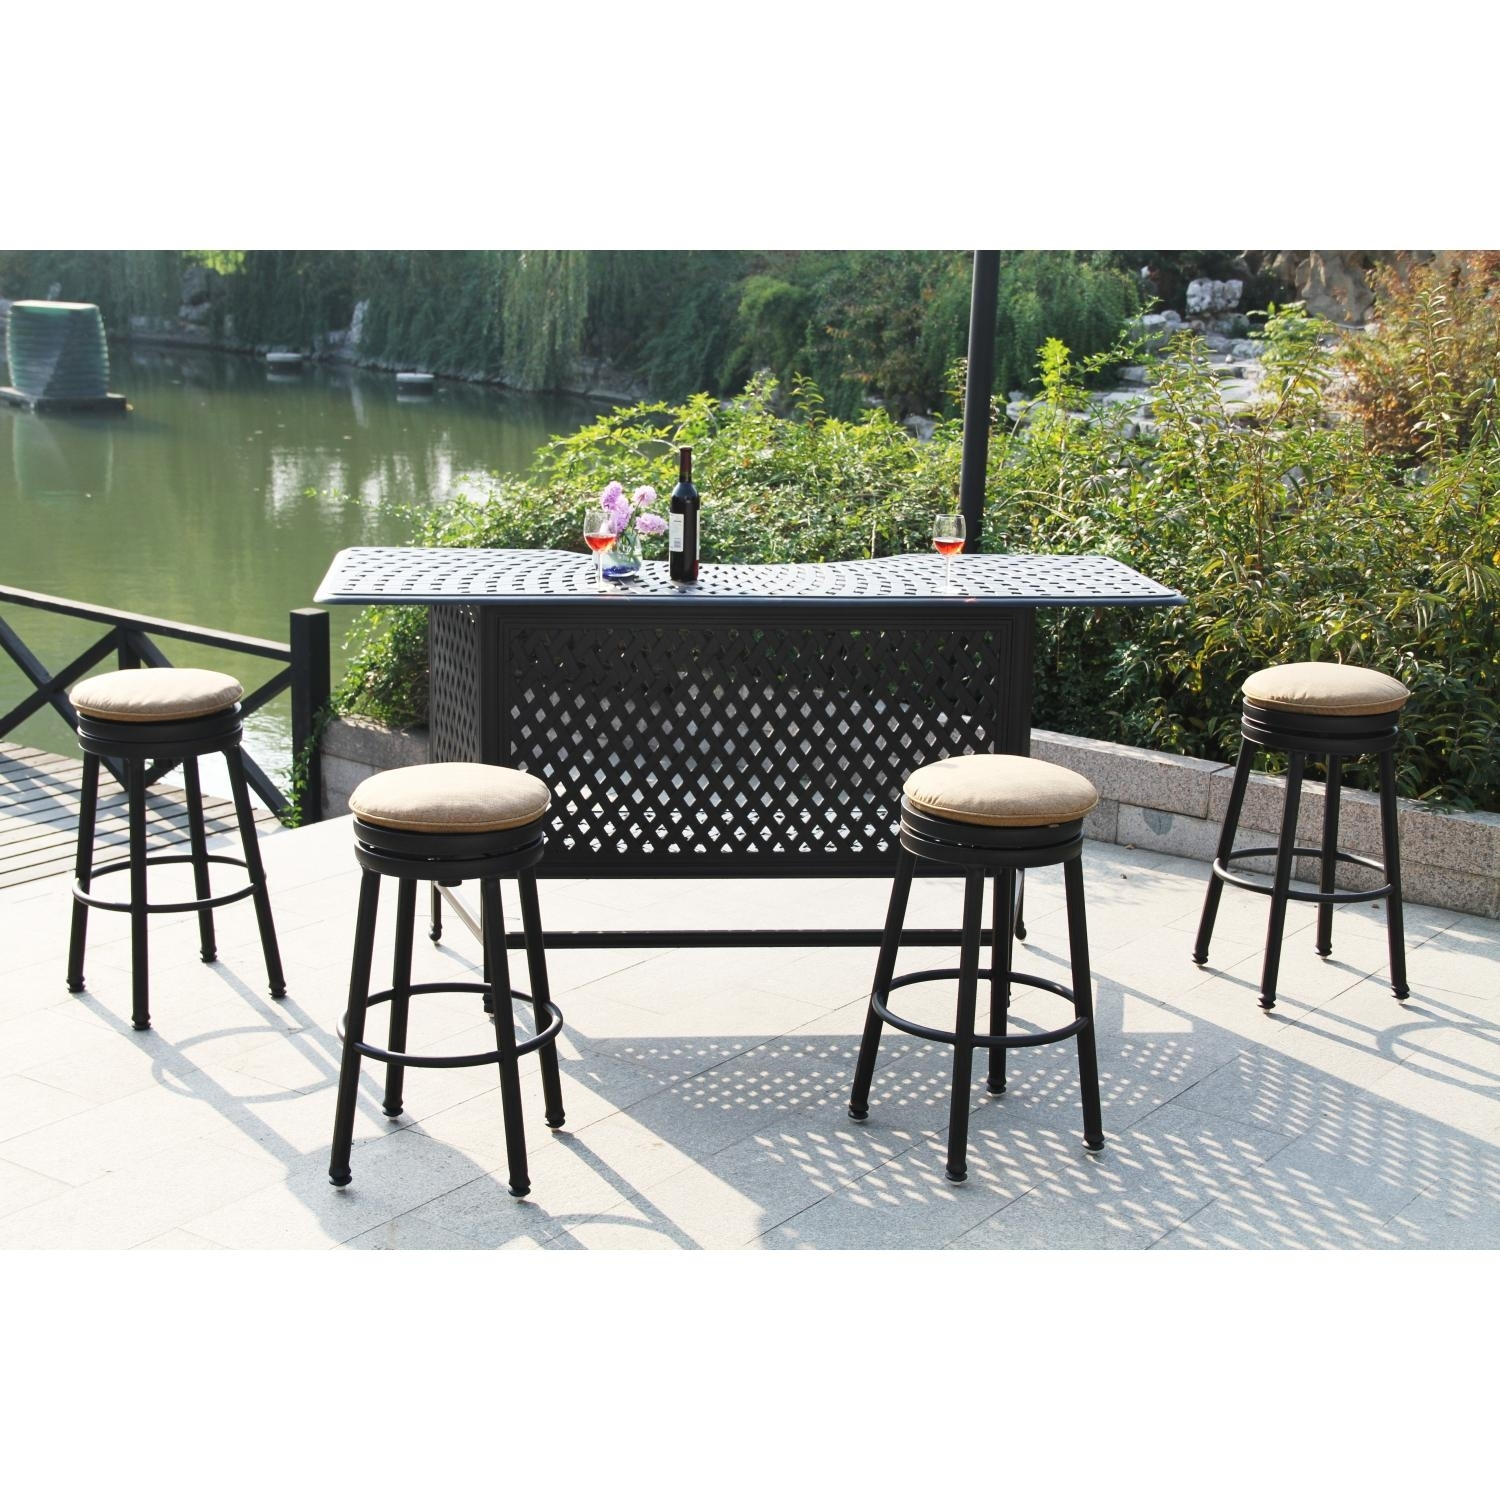 Elegant Outdoor Swivel Bar Stool Outdoor Furniture